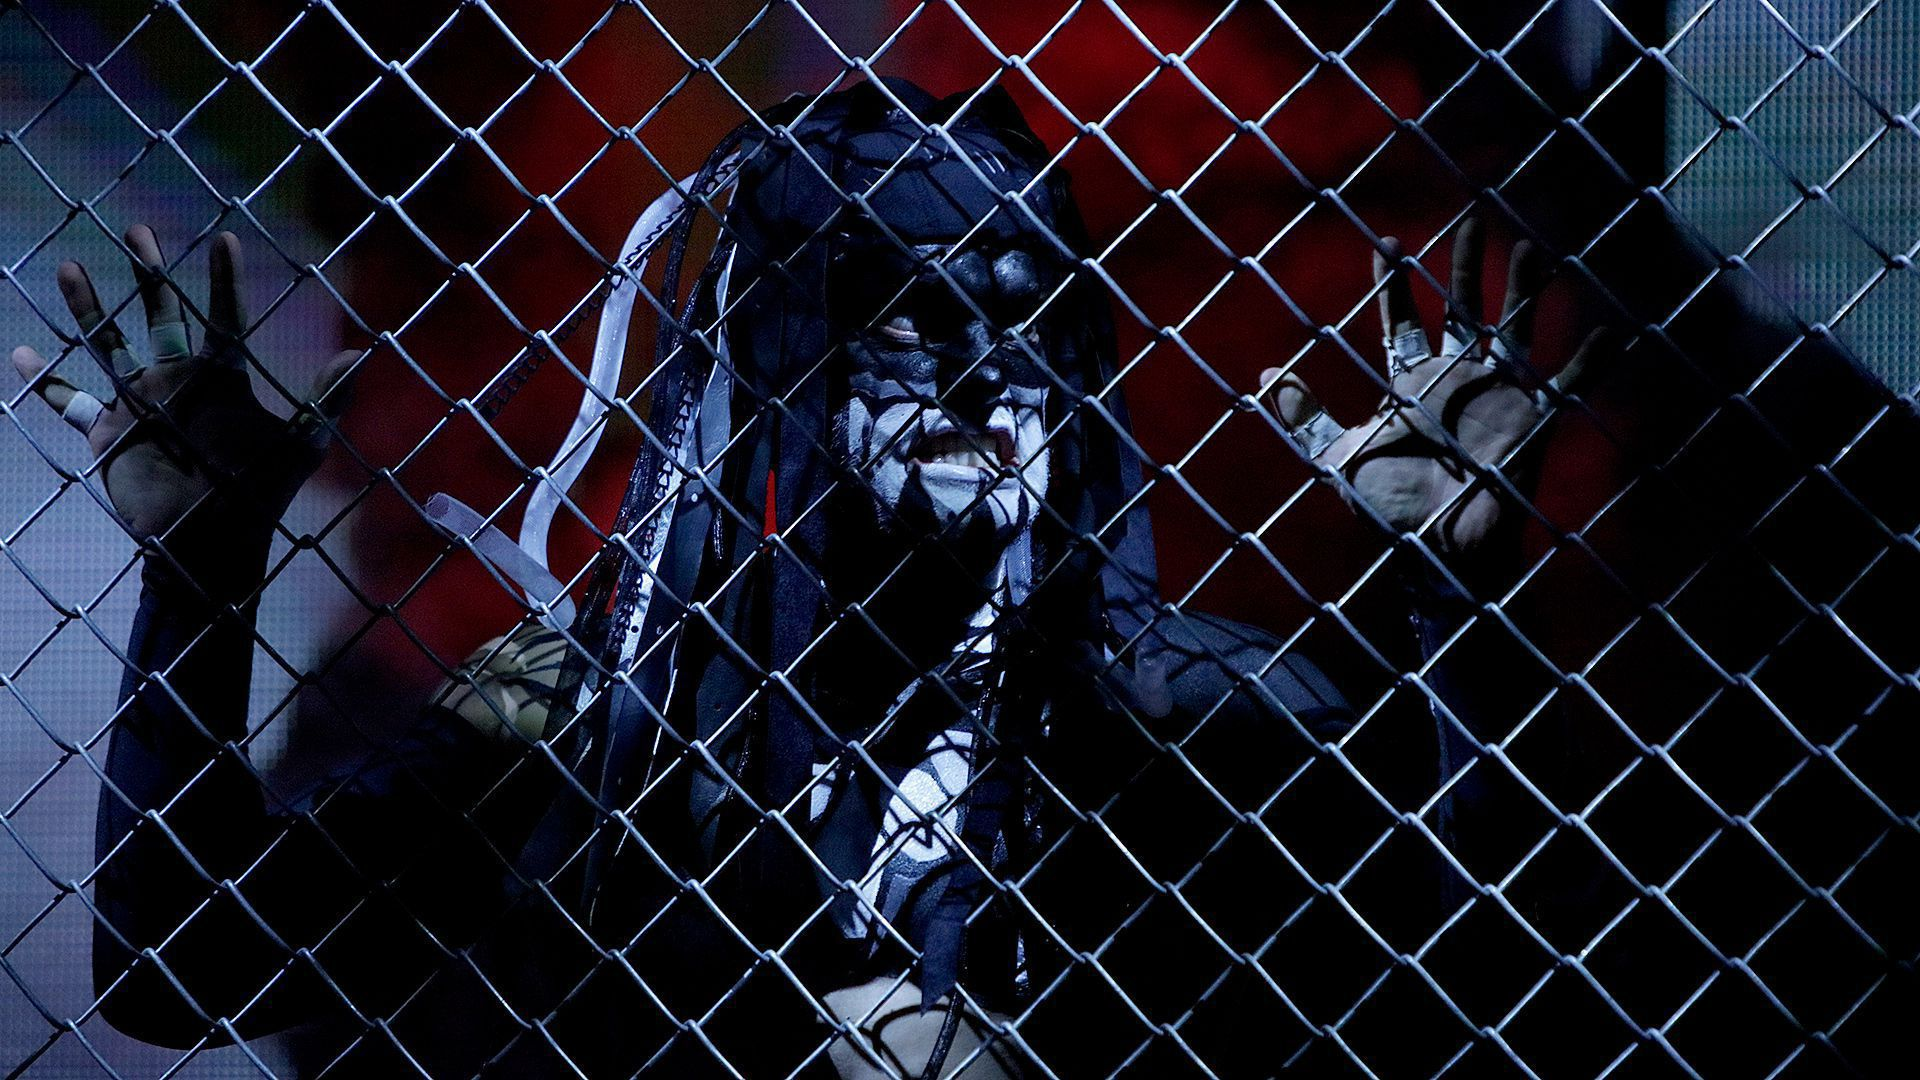 Download Finn Balor Background Hd Wallpapers Fresh Images Hd